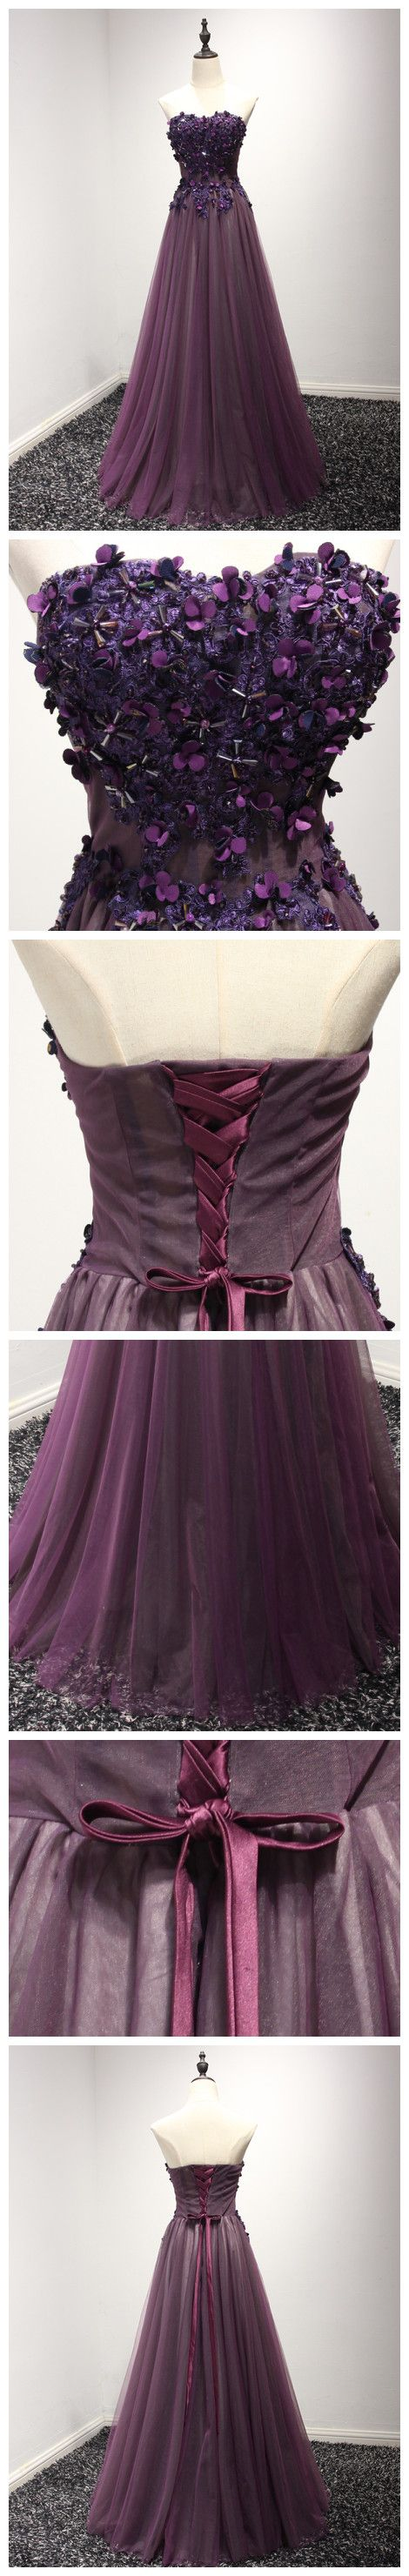 MODEST A-LINE  PROM DRESS,SWEETHEART GRAPE PROM DRESS LONG TULLE APPLIQUE CHIC PROM DRESS AM268